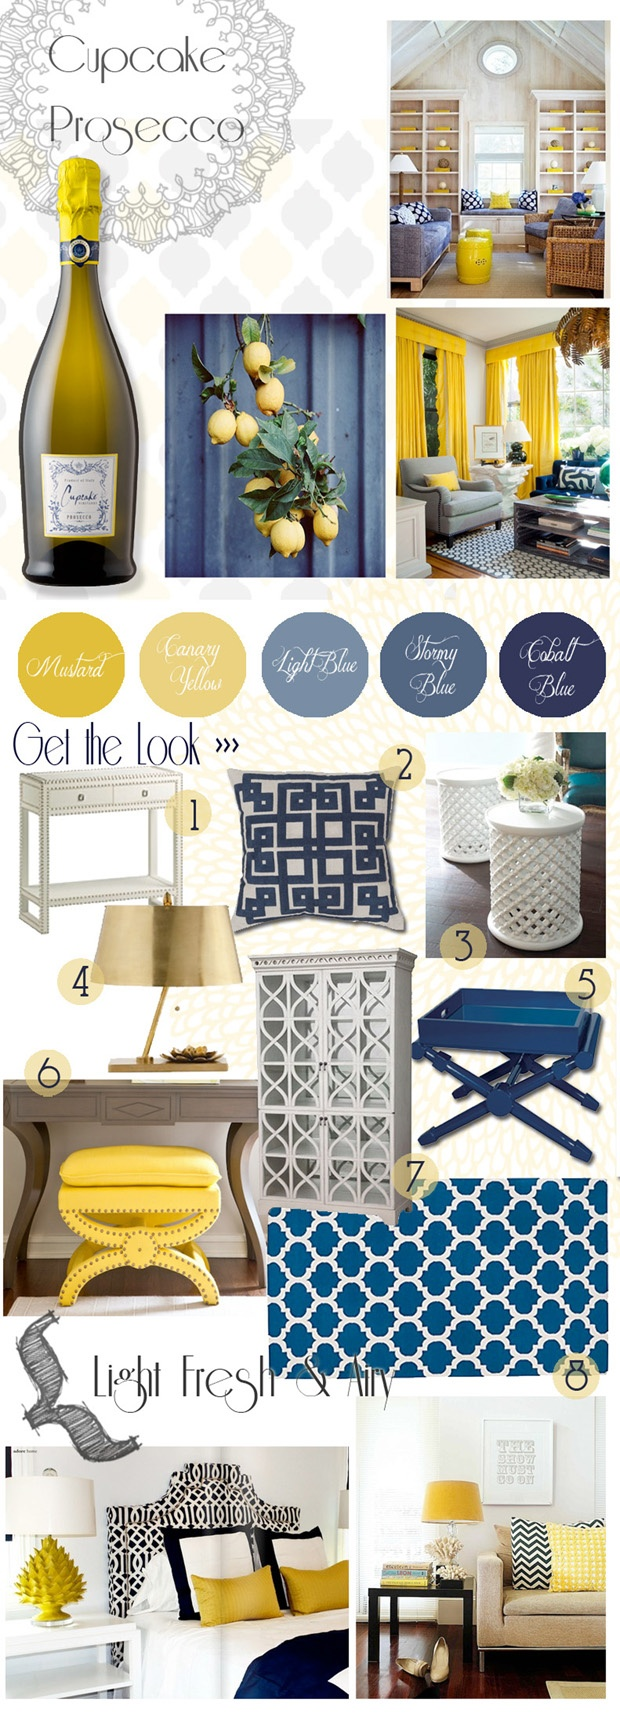 Navy blue and yellow living room - 17 Best Ideas About Blue Yellow Bedrooms On Pinterest Blue Yellow Bathrooms Blue Yellow Grey And Blue Yellow Rooms